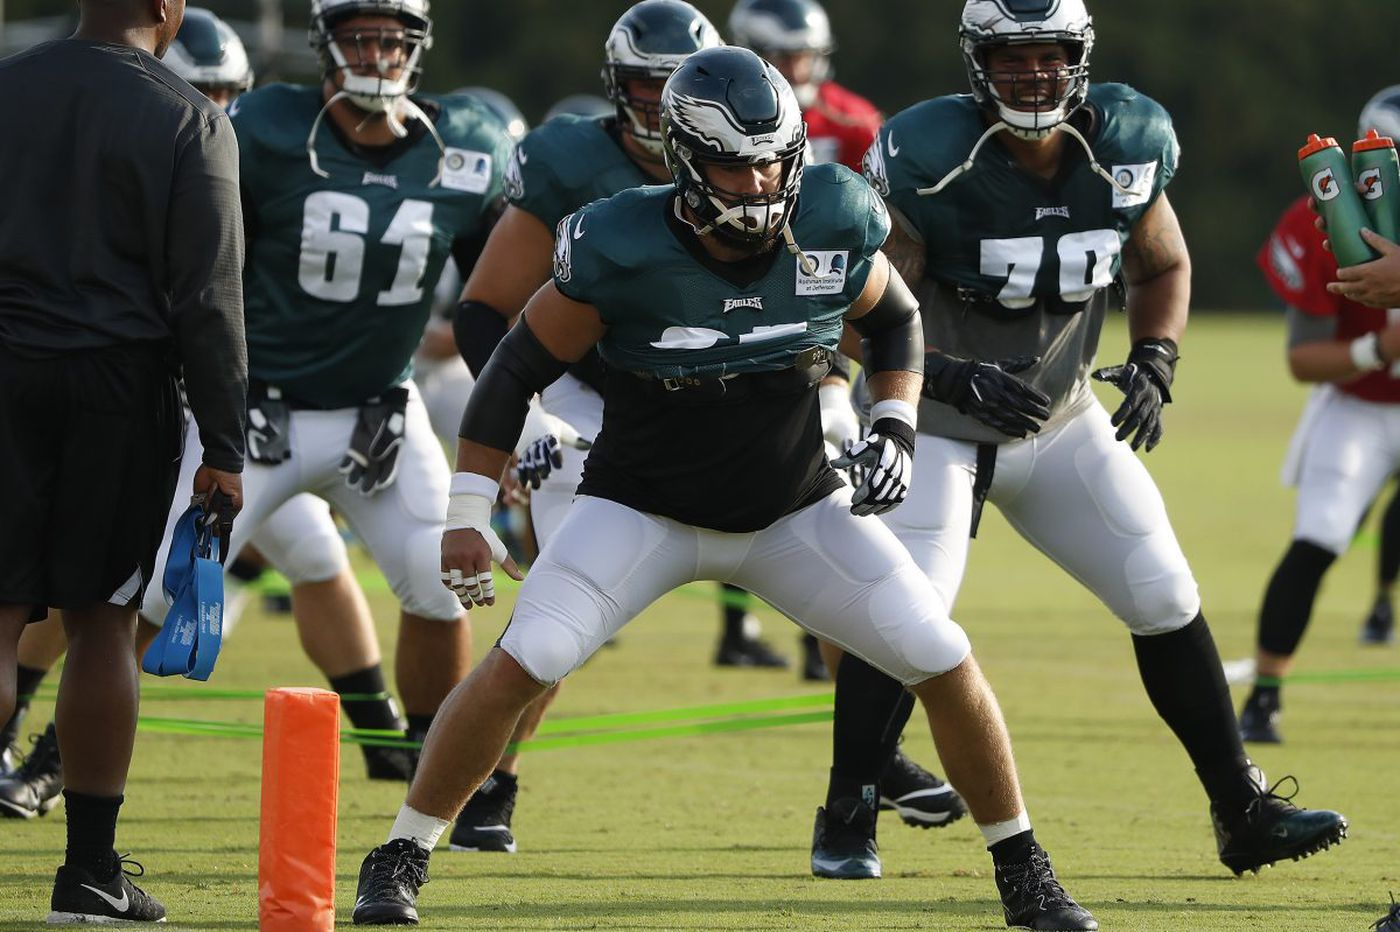 Key to offensive line, Eagles center Jason Kelce looking to snap back